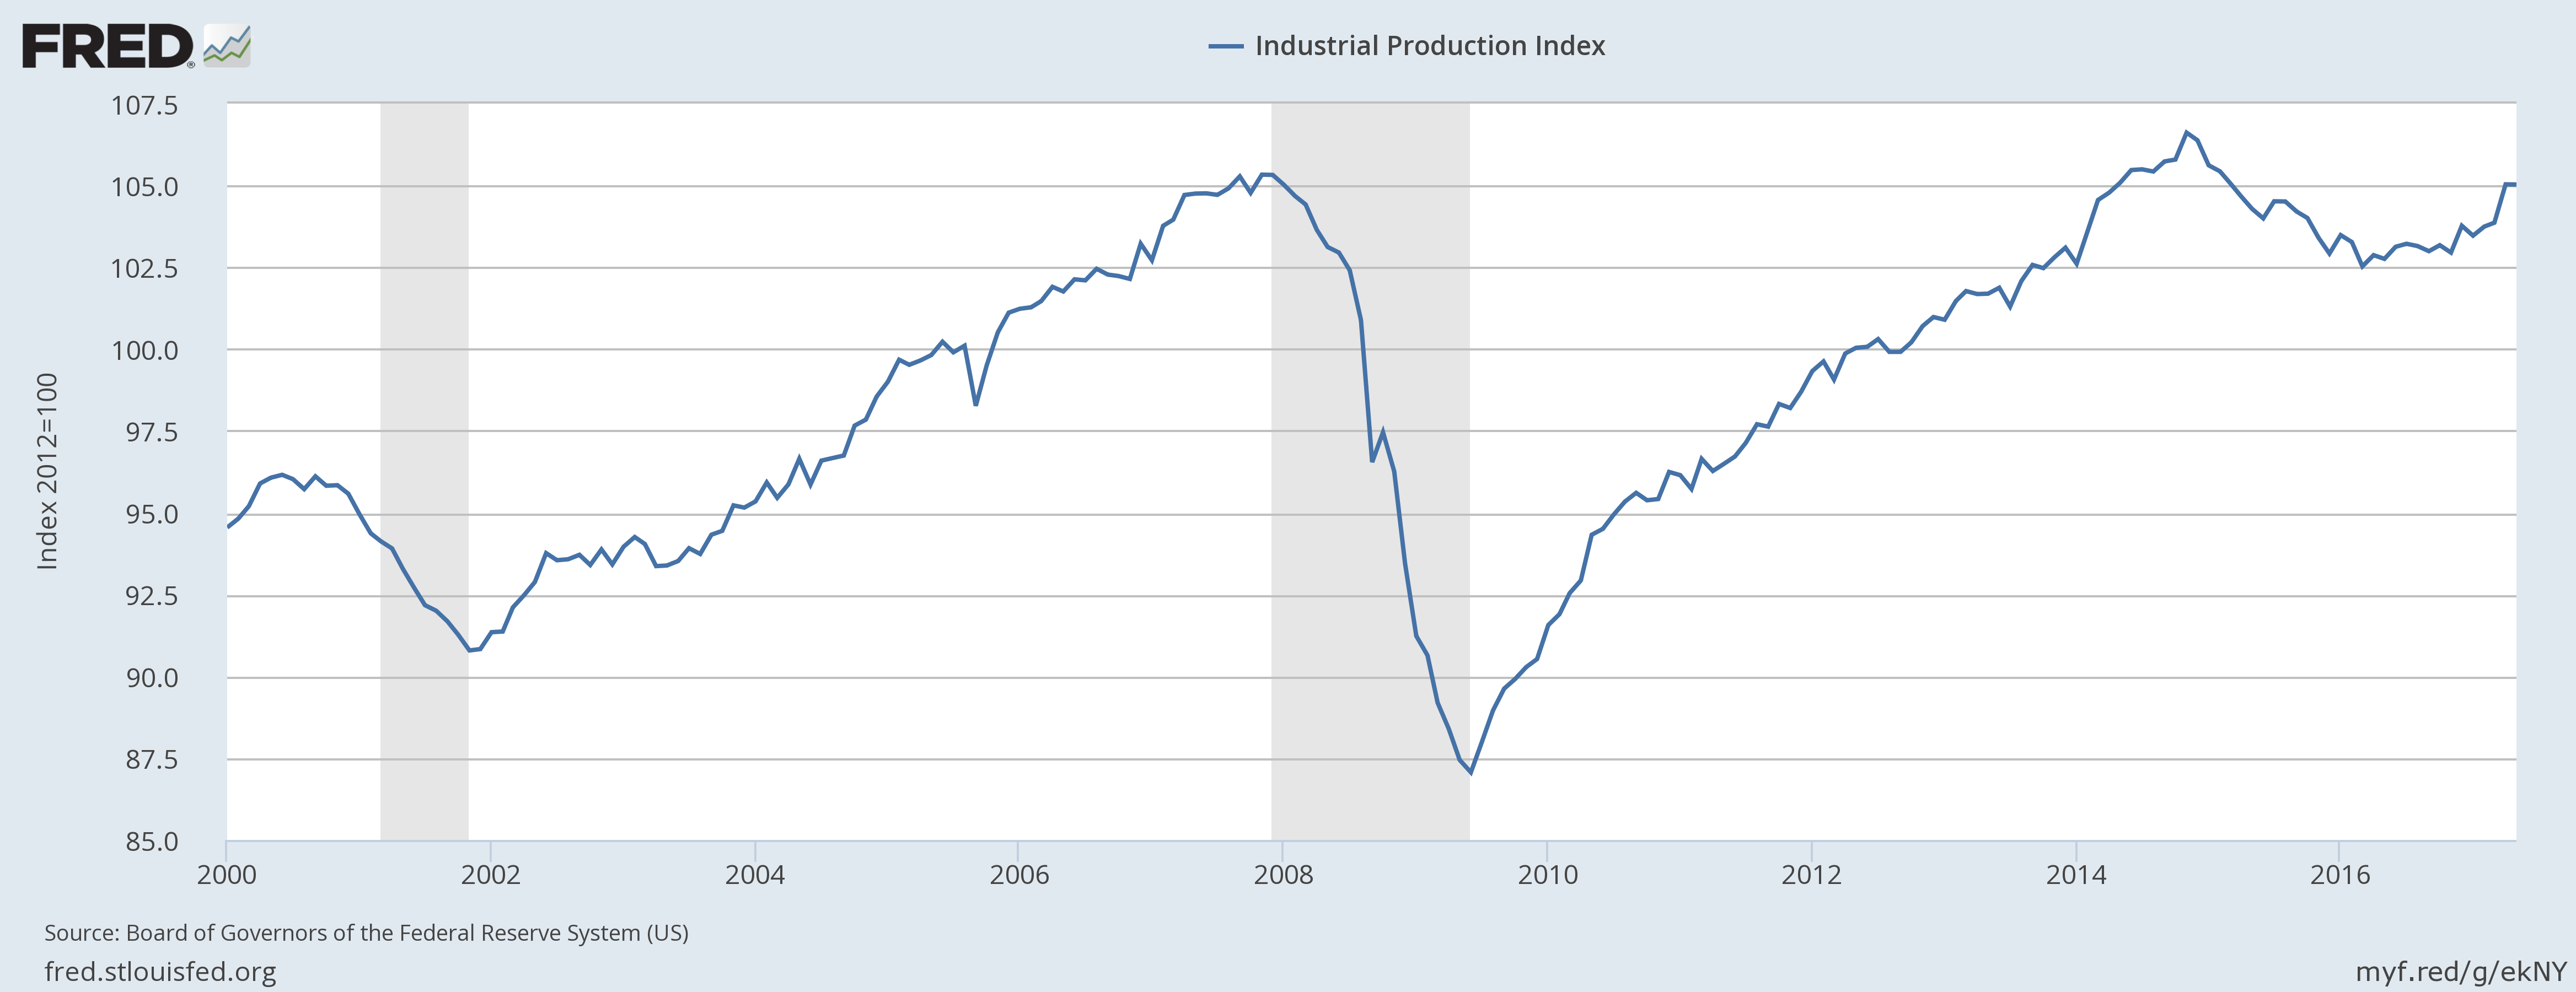 Industrial Production for Freight Analysis